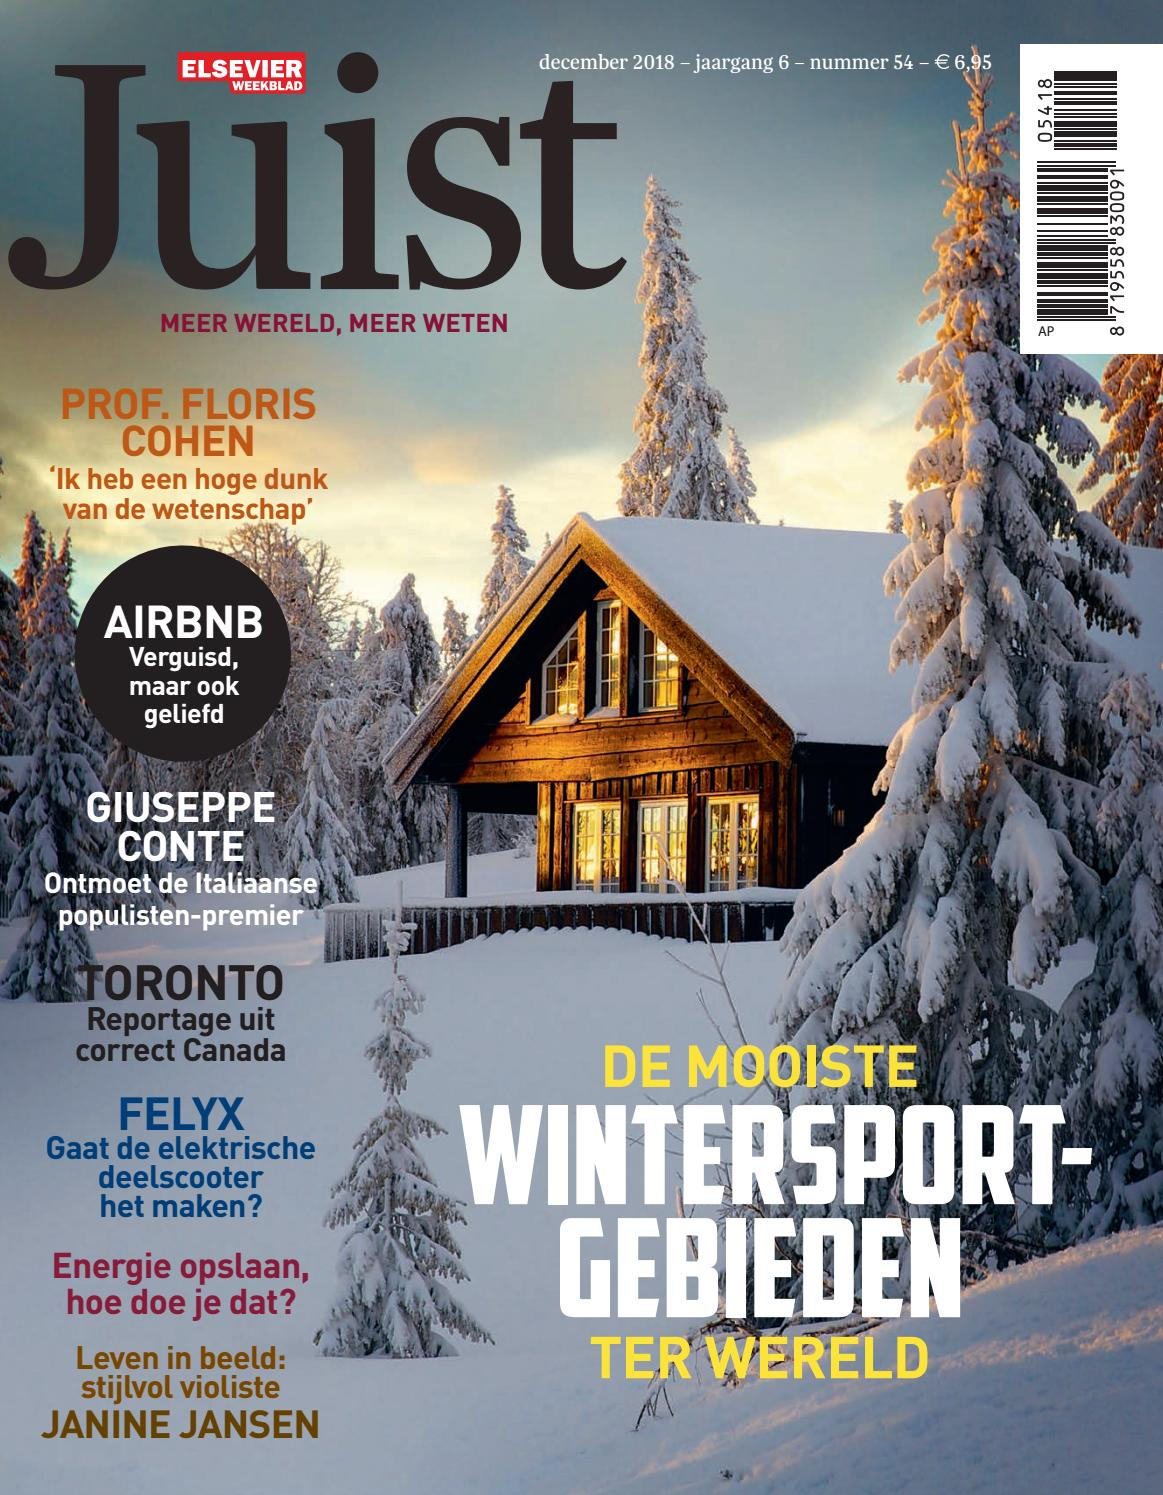 Preview Juist 54 By Juist Magazine Issuu